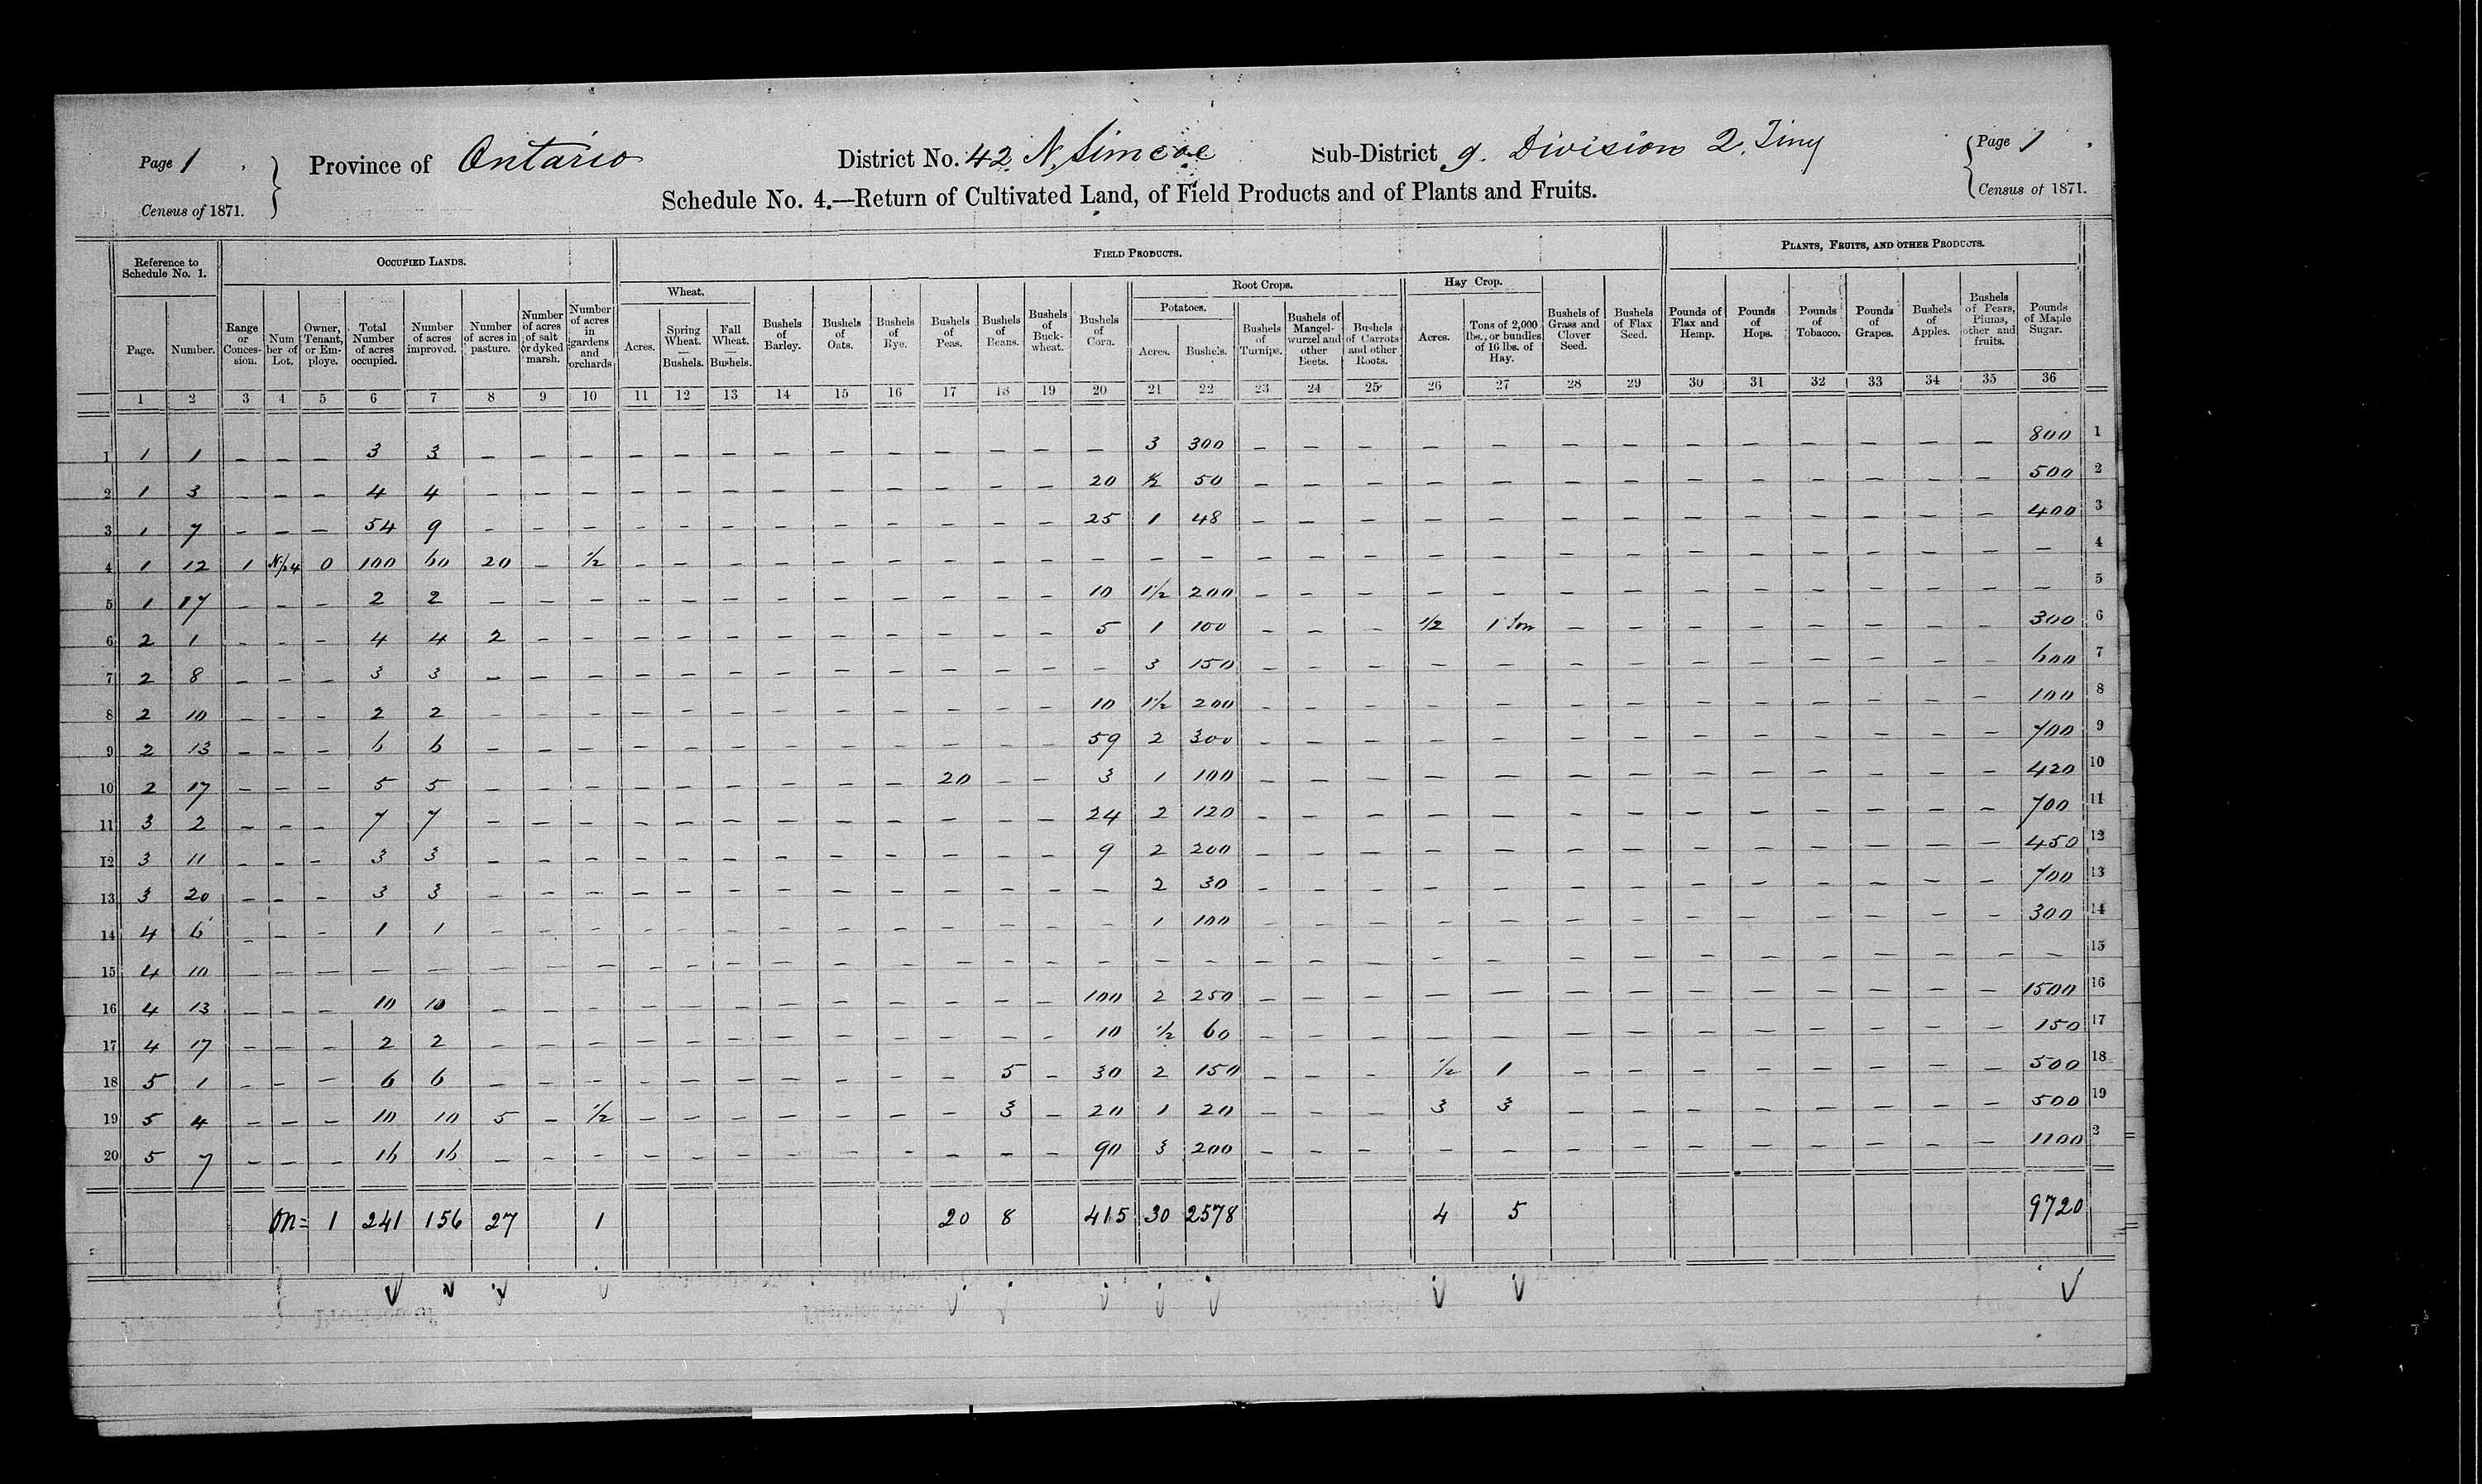 Title: Census of Canada, 1871 - Mikan Number: 142105 - Microform: c-9963